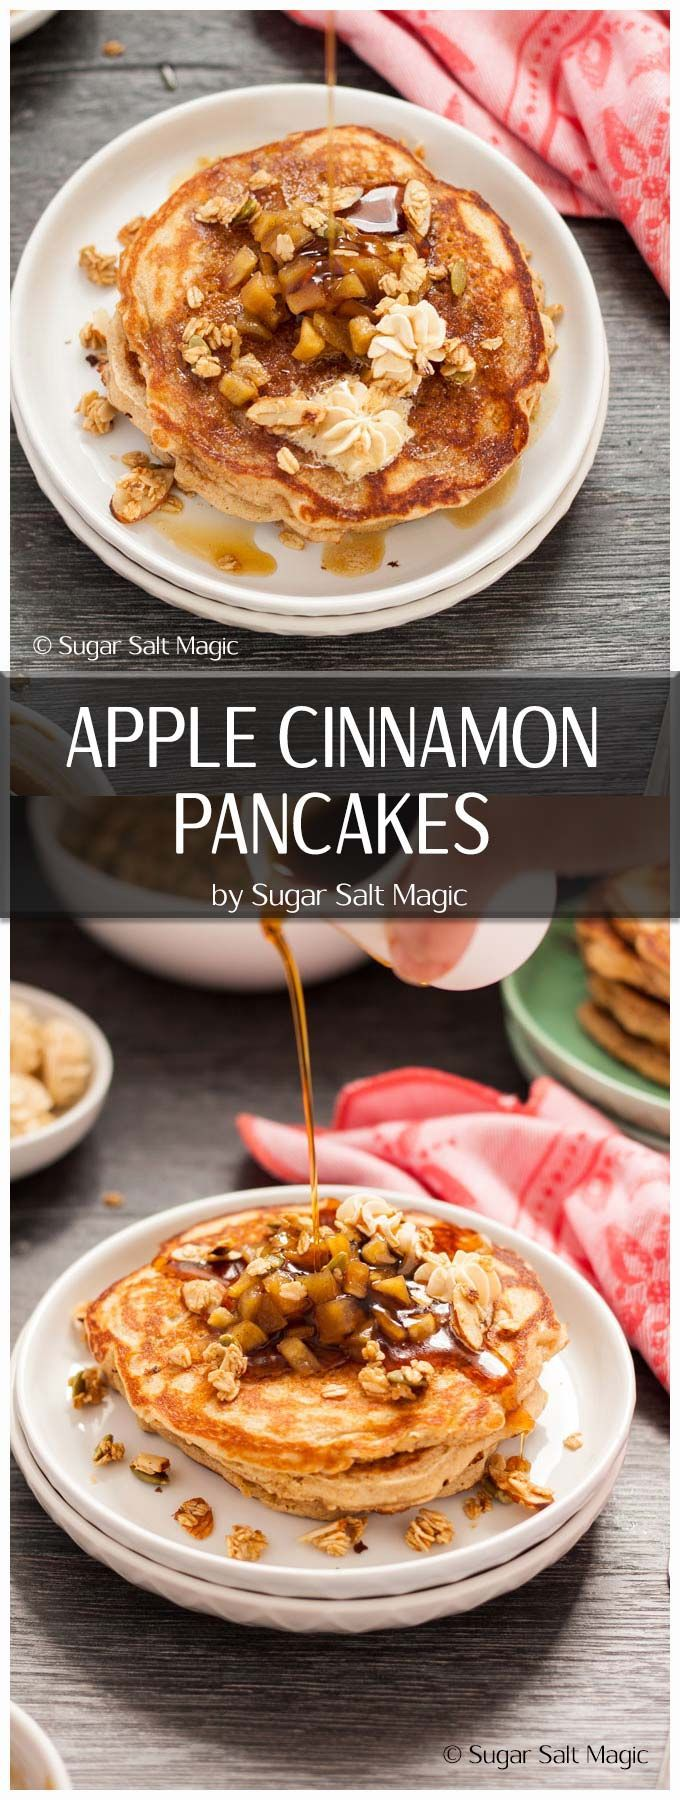 A delicious Apple Cinnamon Pancakes recipe with Quick Maple Granola and Whipped Maple Butter for a special breakfast treat. #pancakes #apples via @sugarsaltmagic